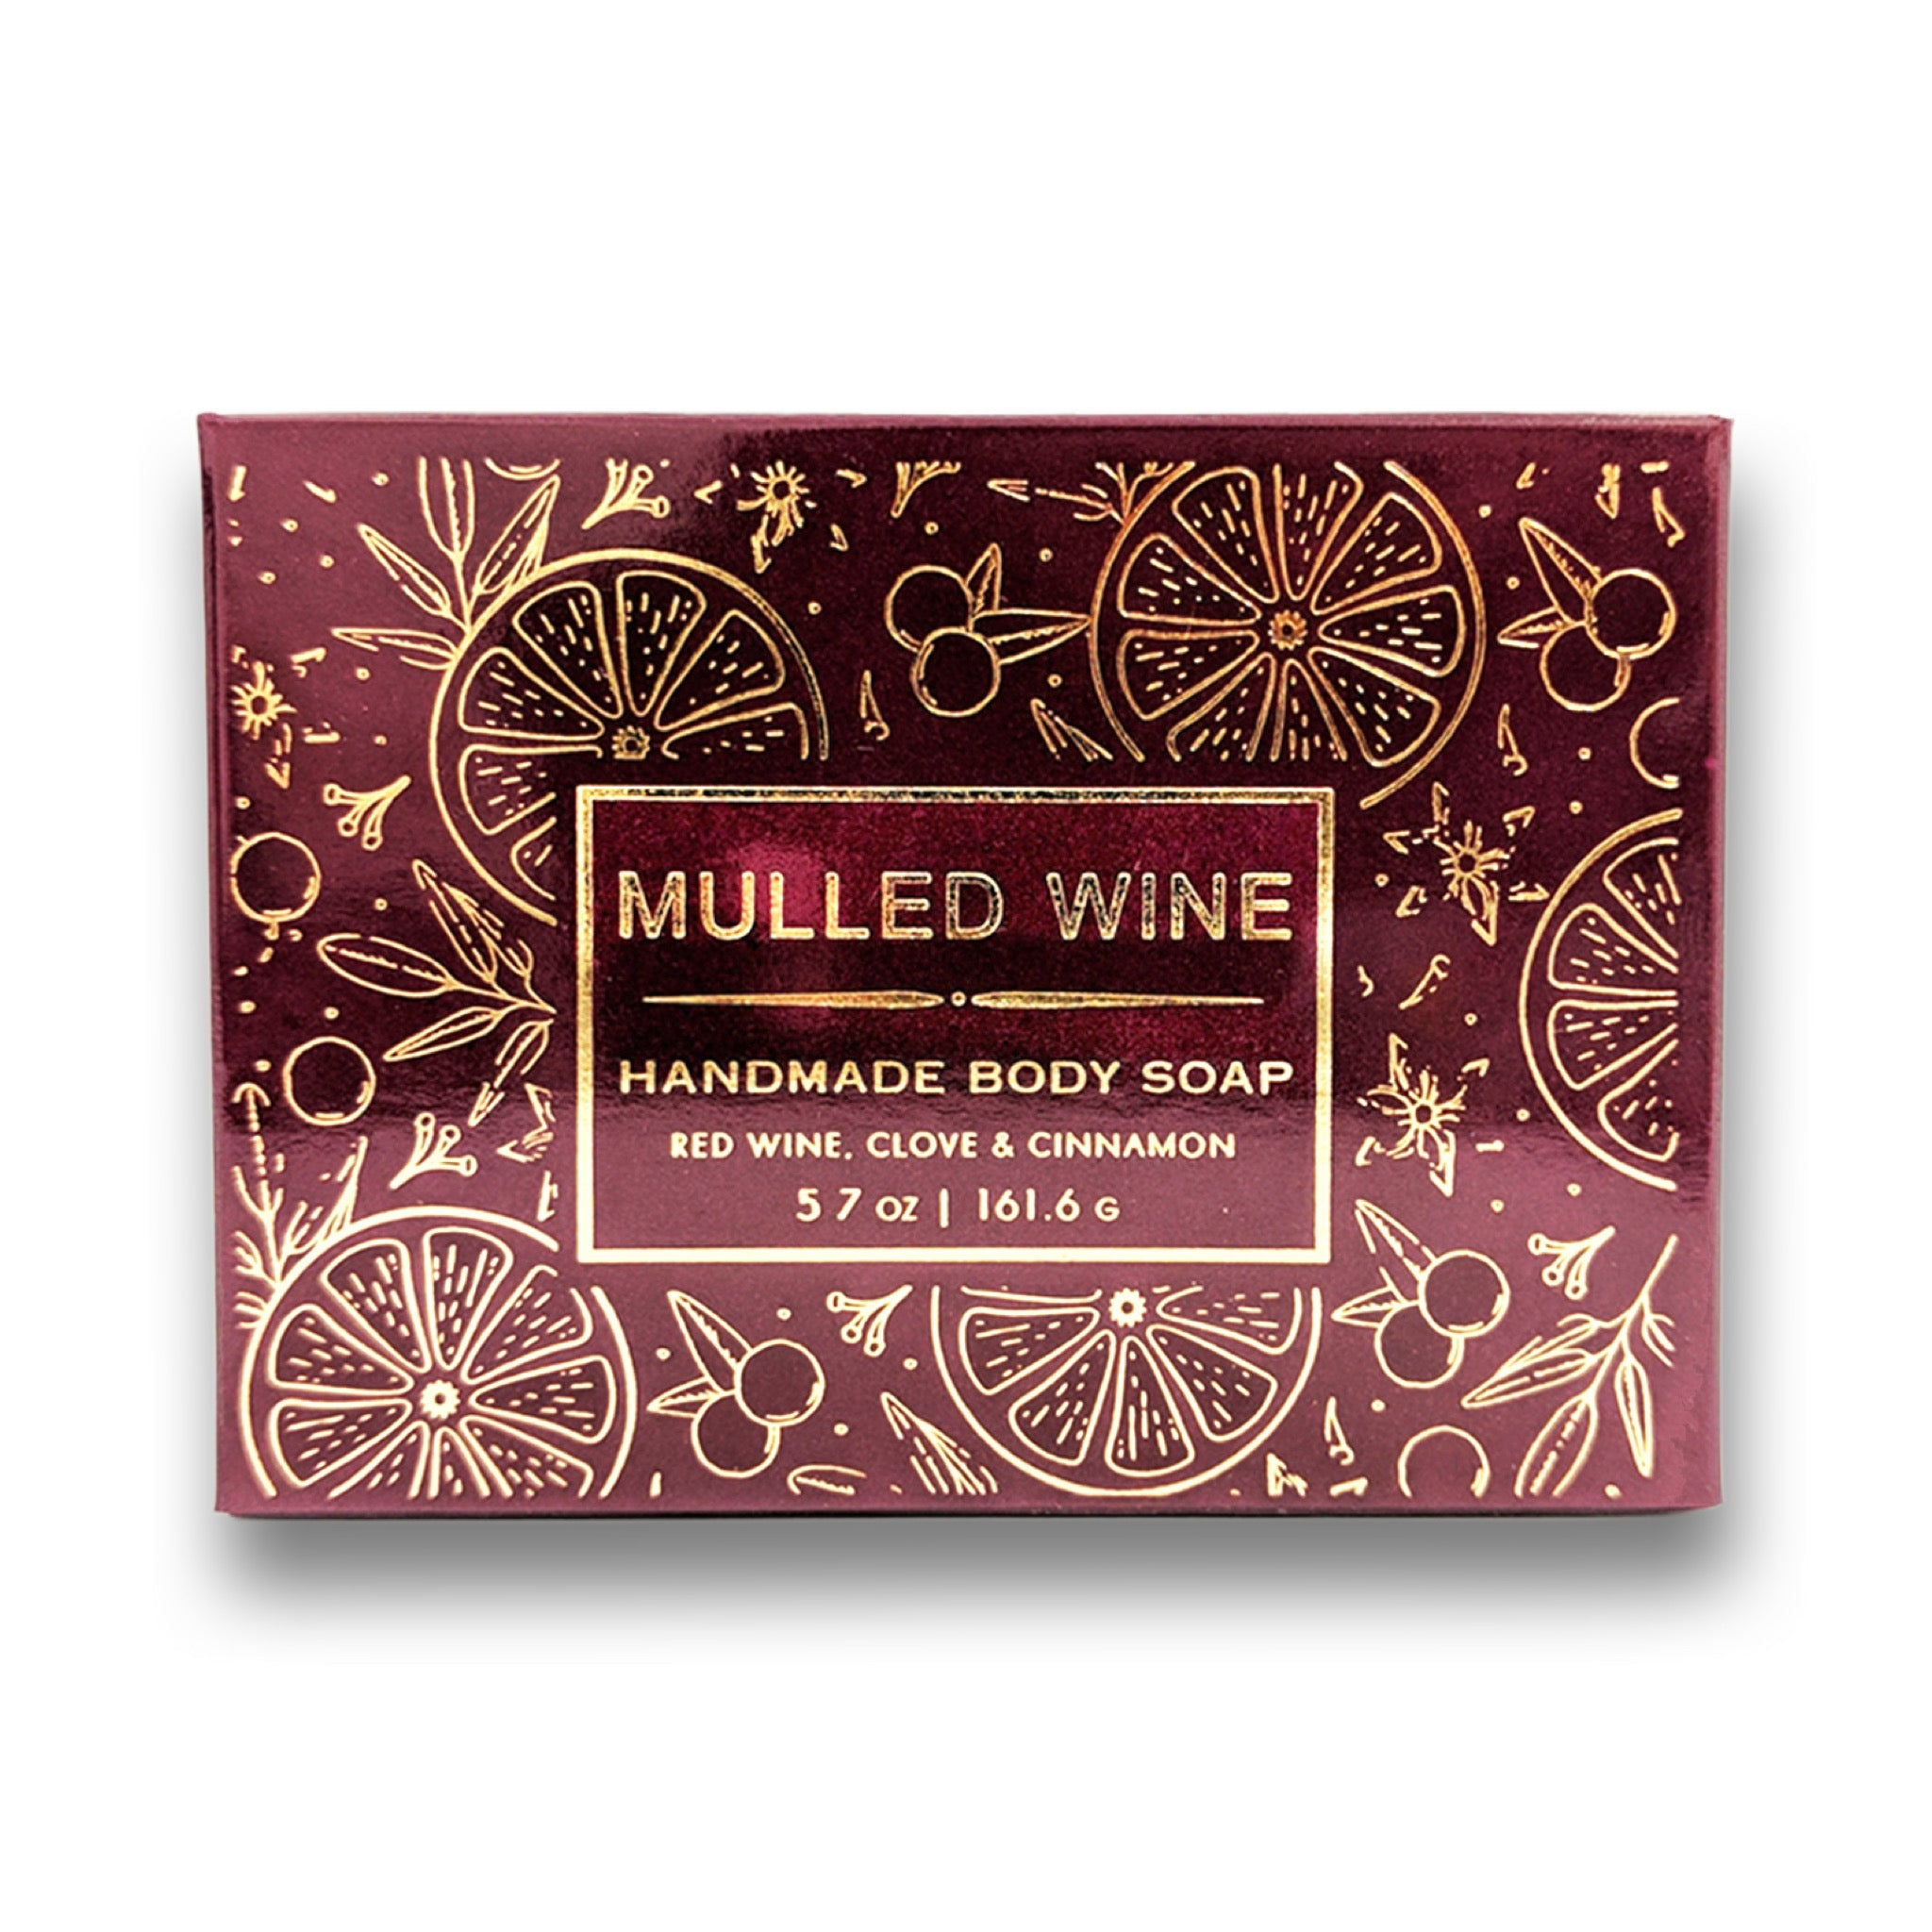 Mulled Wine Body Soap